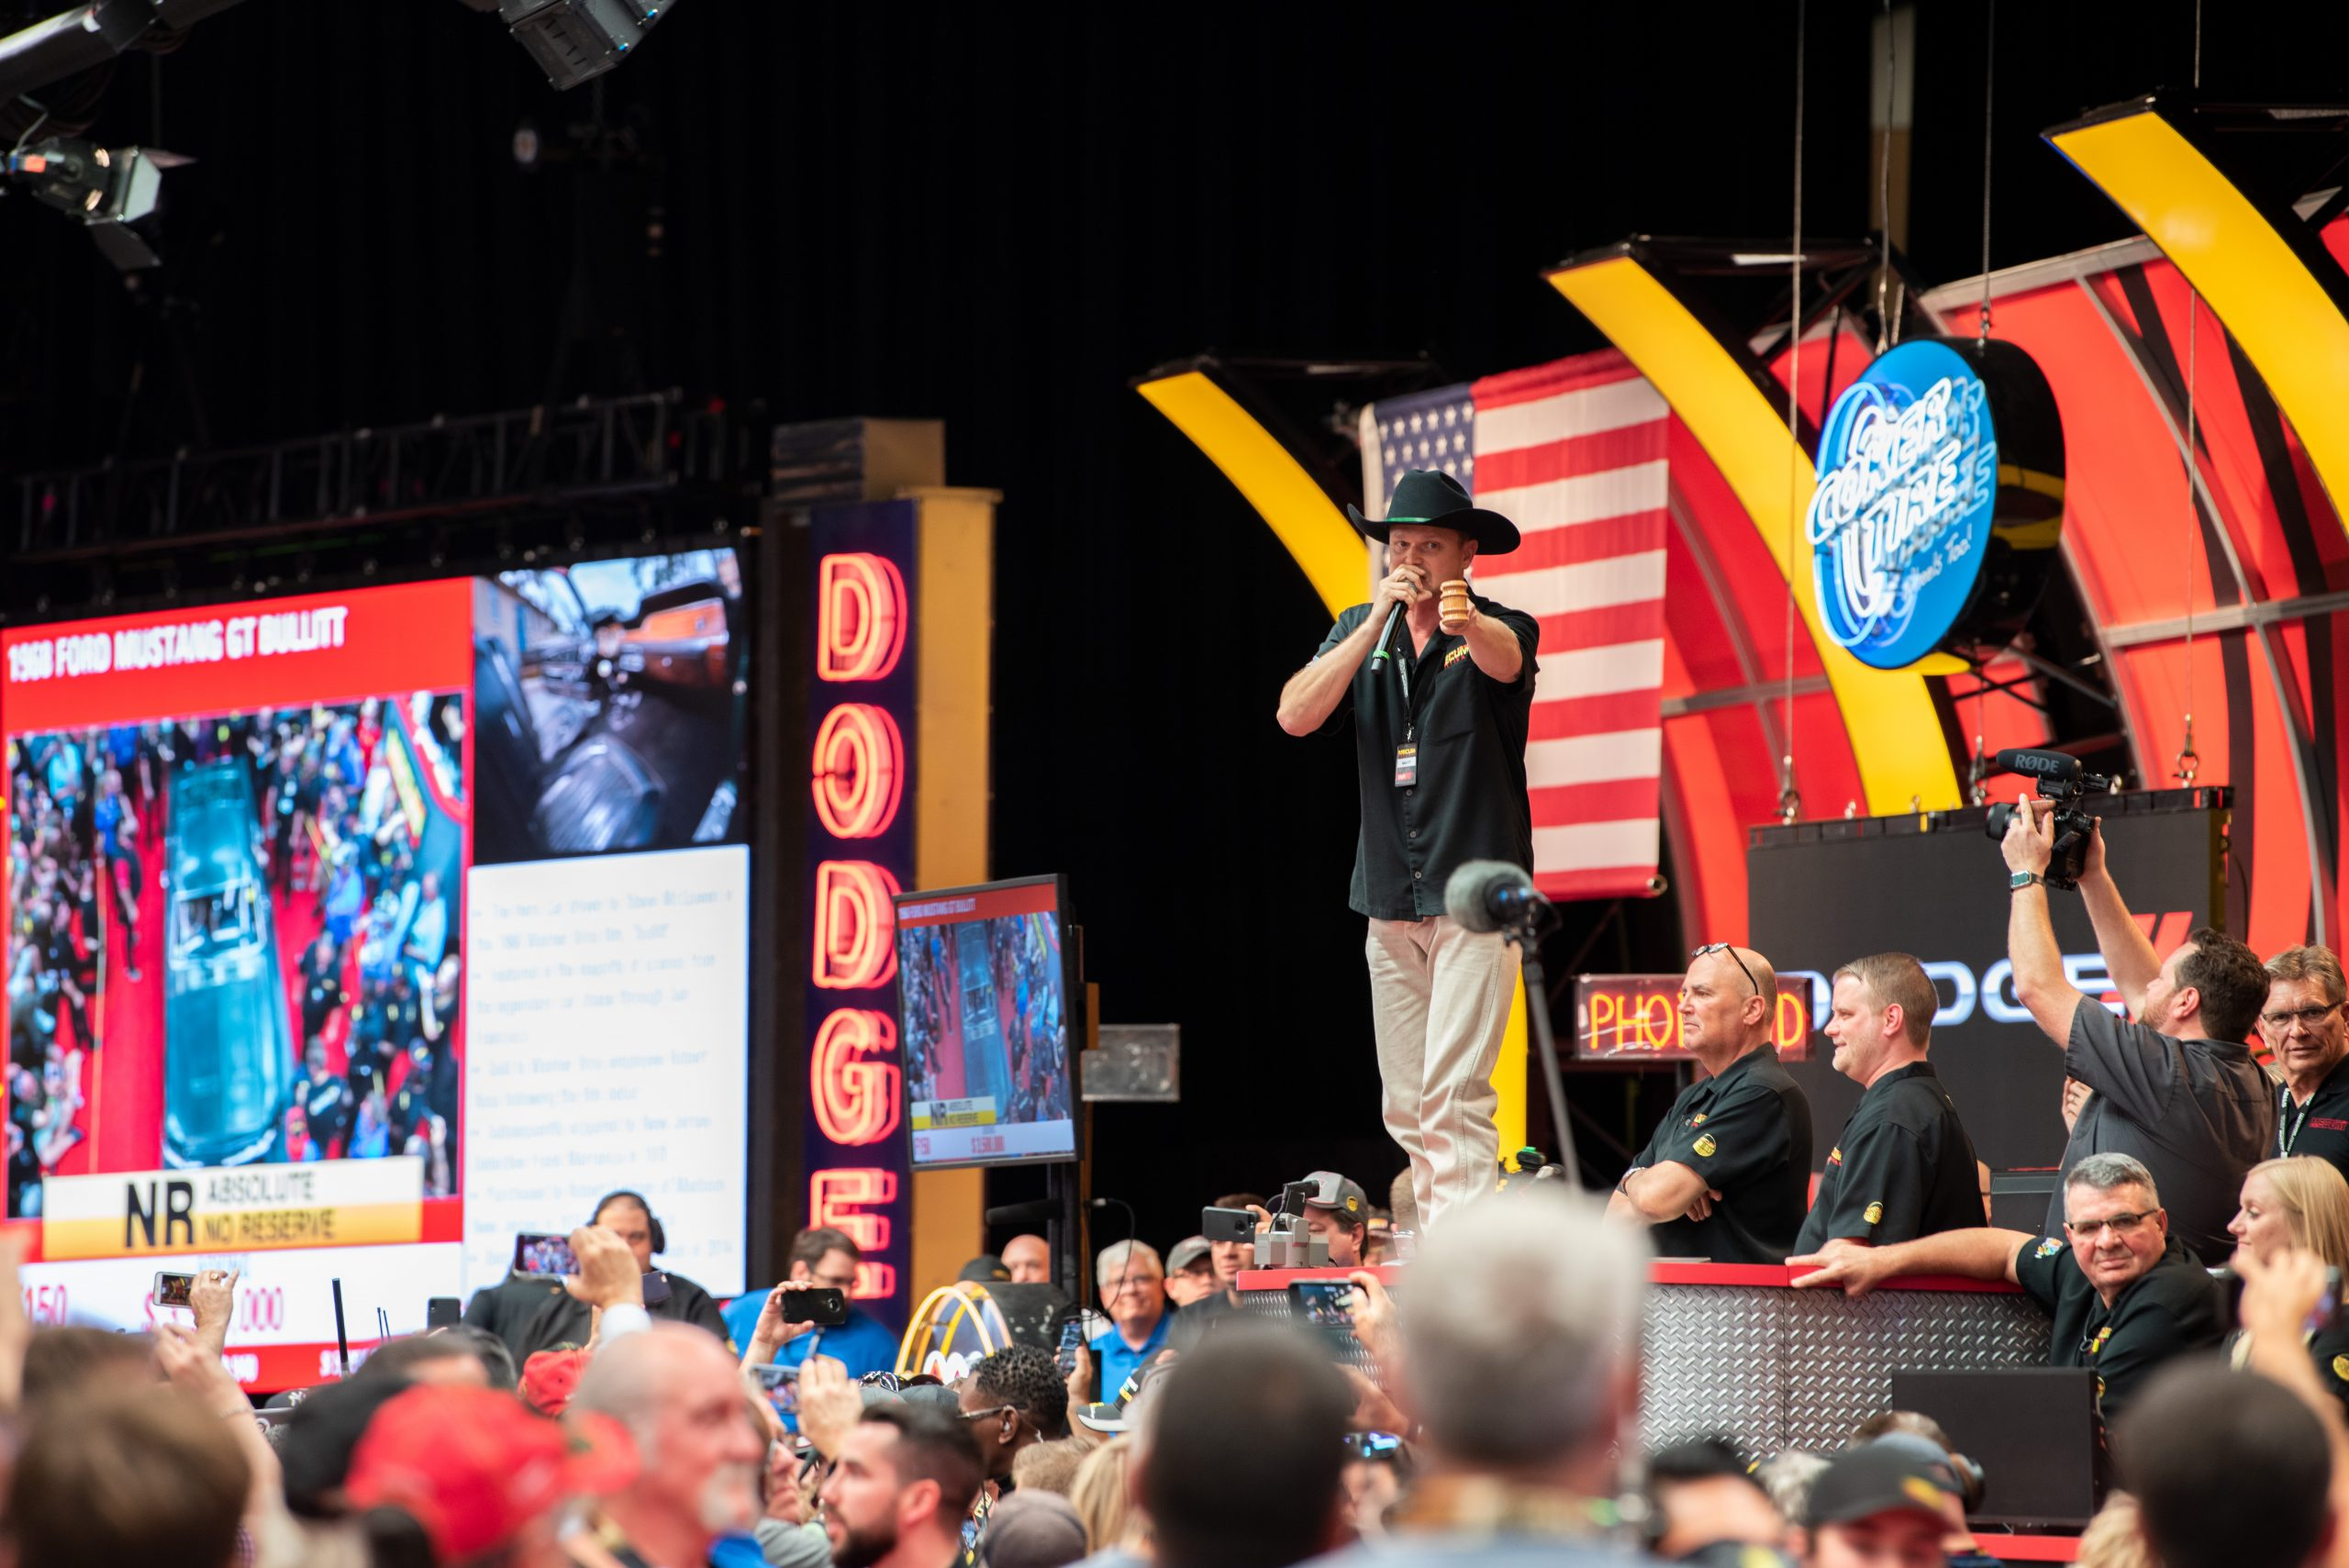 Mecum Auctioneer pointing